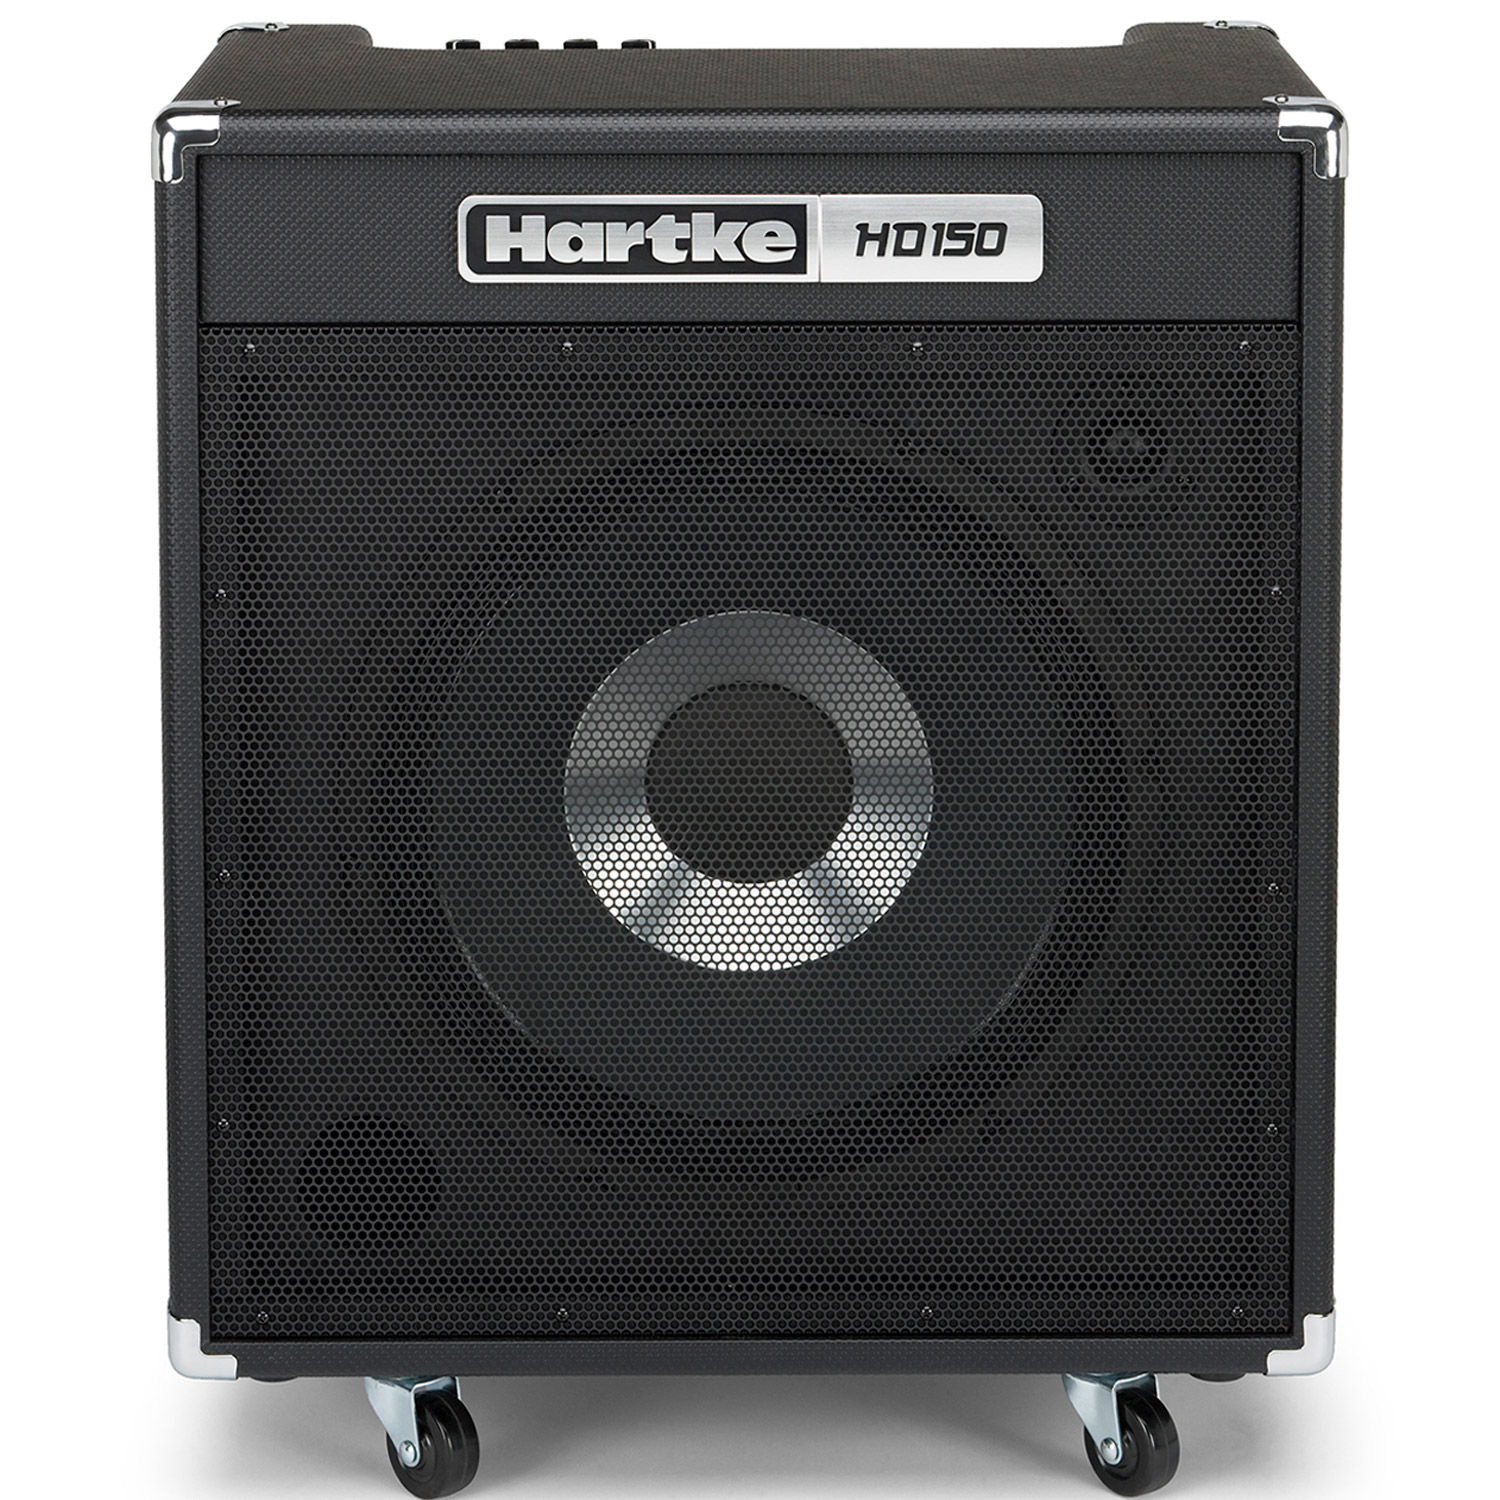 HMHD150 Bass Combo leftright